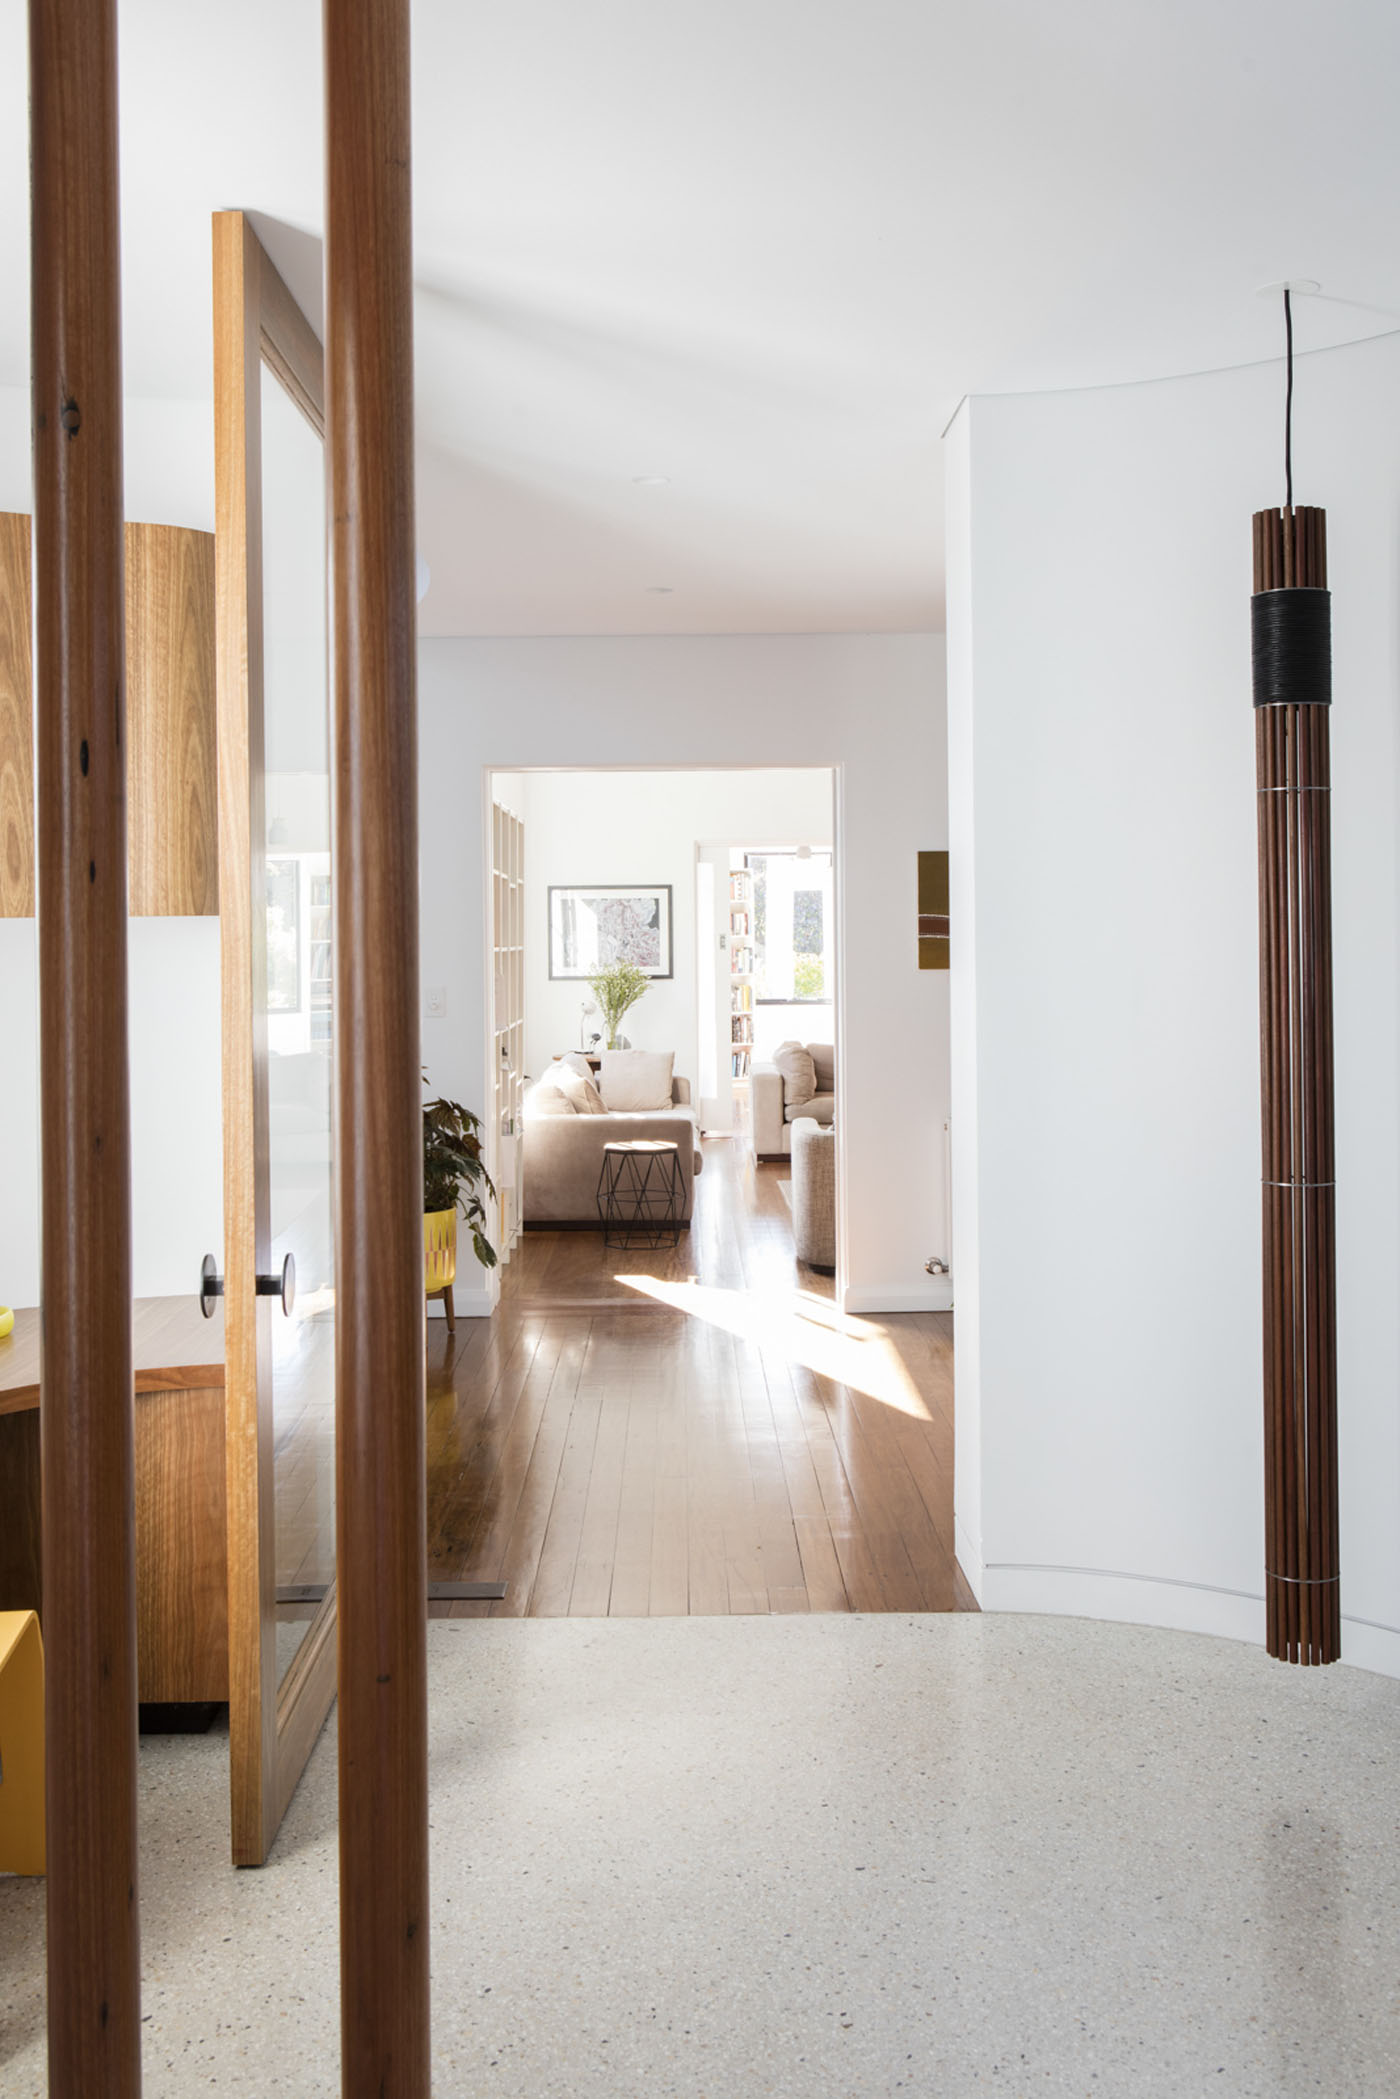 Conway Atkins House in Dover Heights by Sydney architect Sam Crawford Architect. Custom lighting has been designed to fit into the house's design.